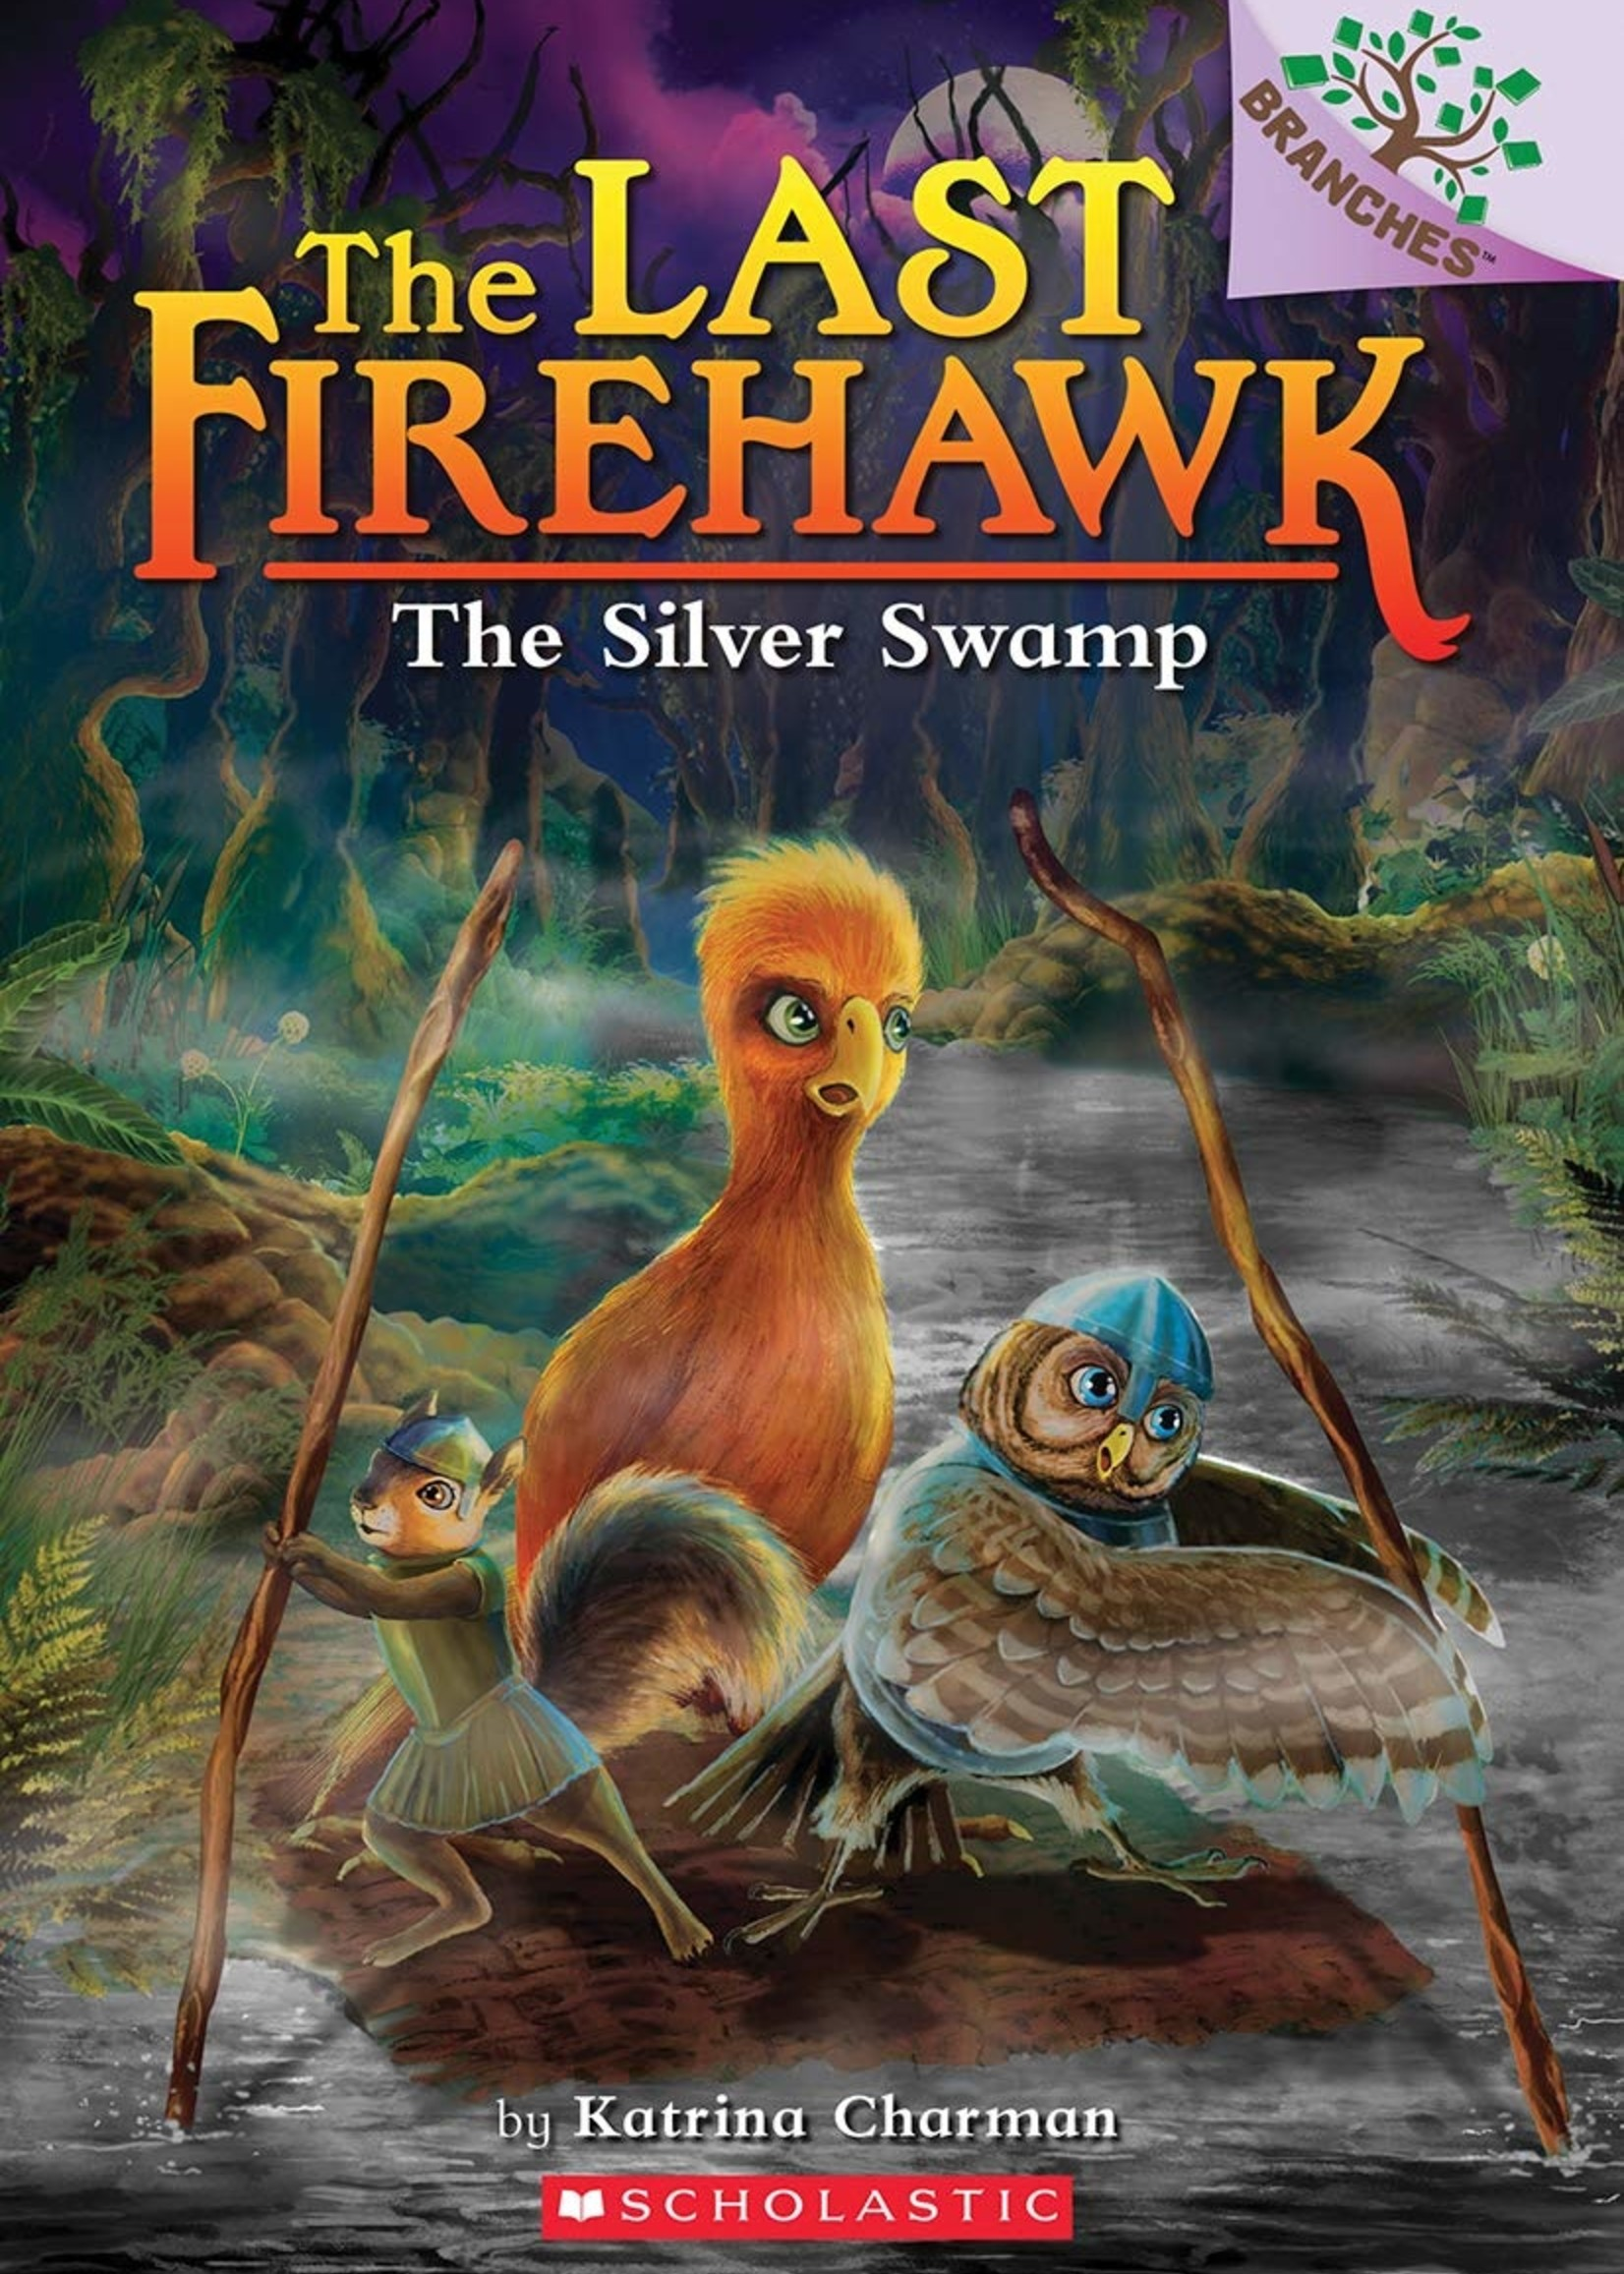 The Last Firehawk #08, The Silver Swamp - Paperback